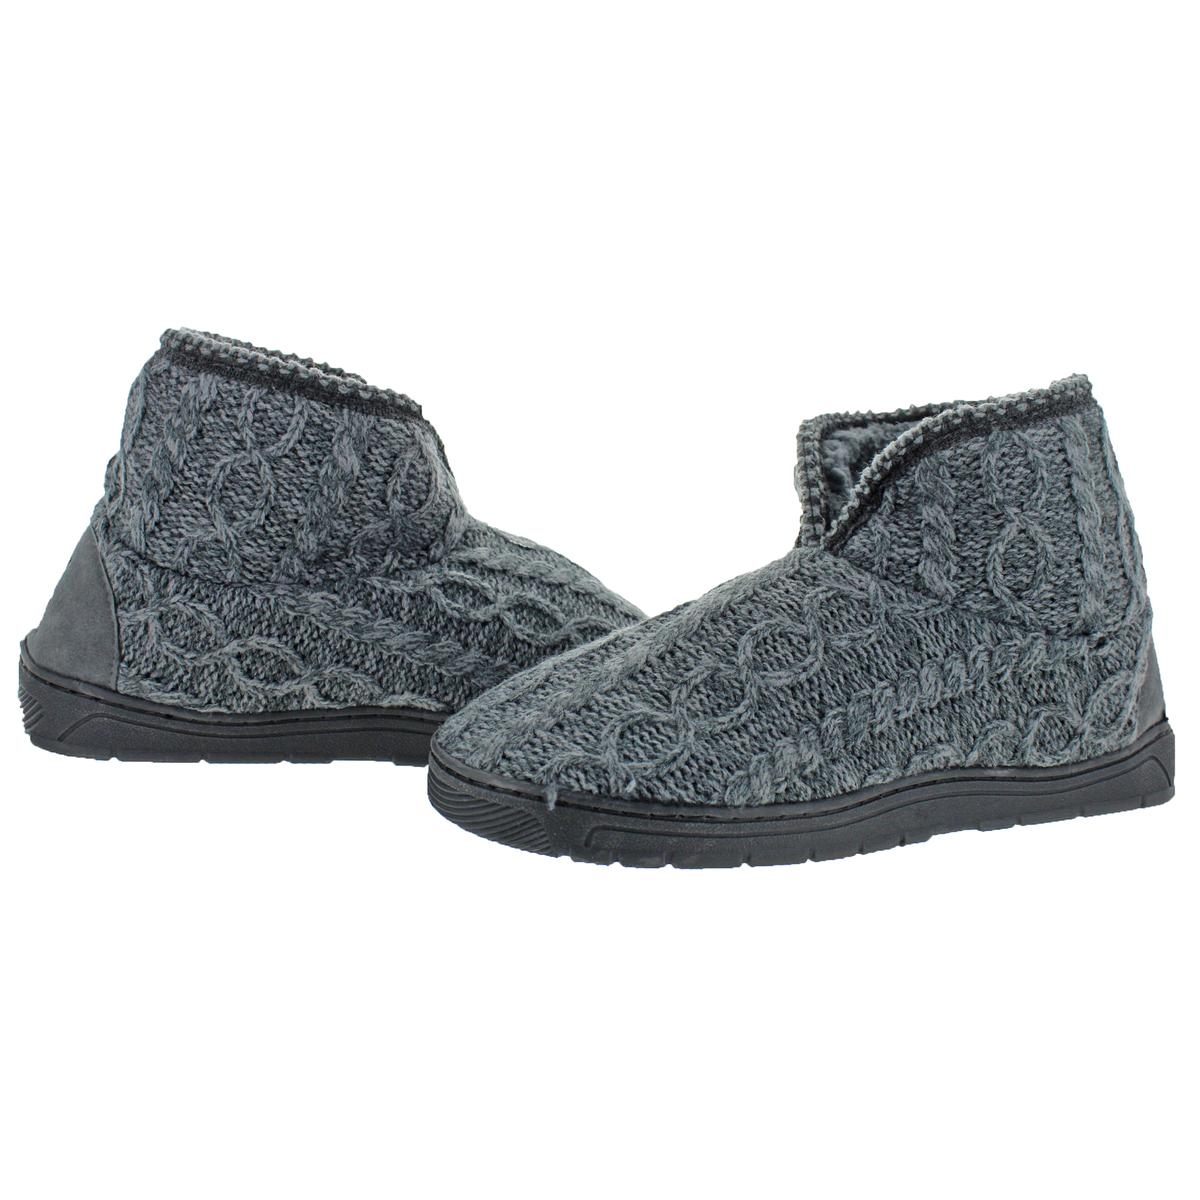 Mukluks-Men-039-s-Mark-Sweater-Knit-Furpa-Ankle-Bootie-House-Slippers thumbnail 10